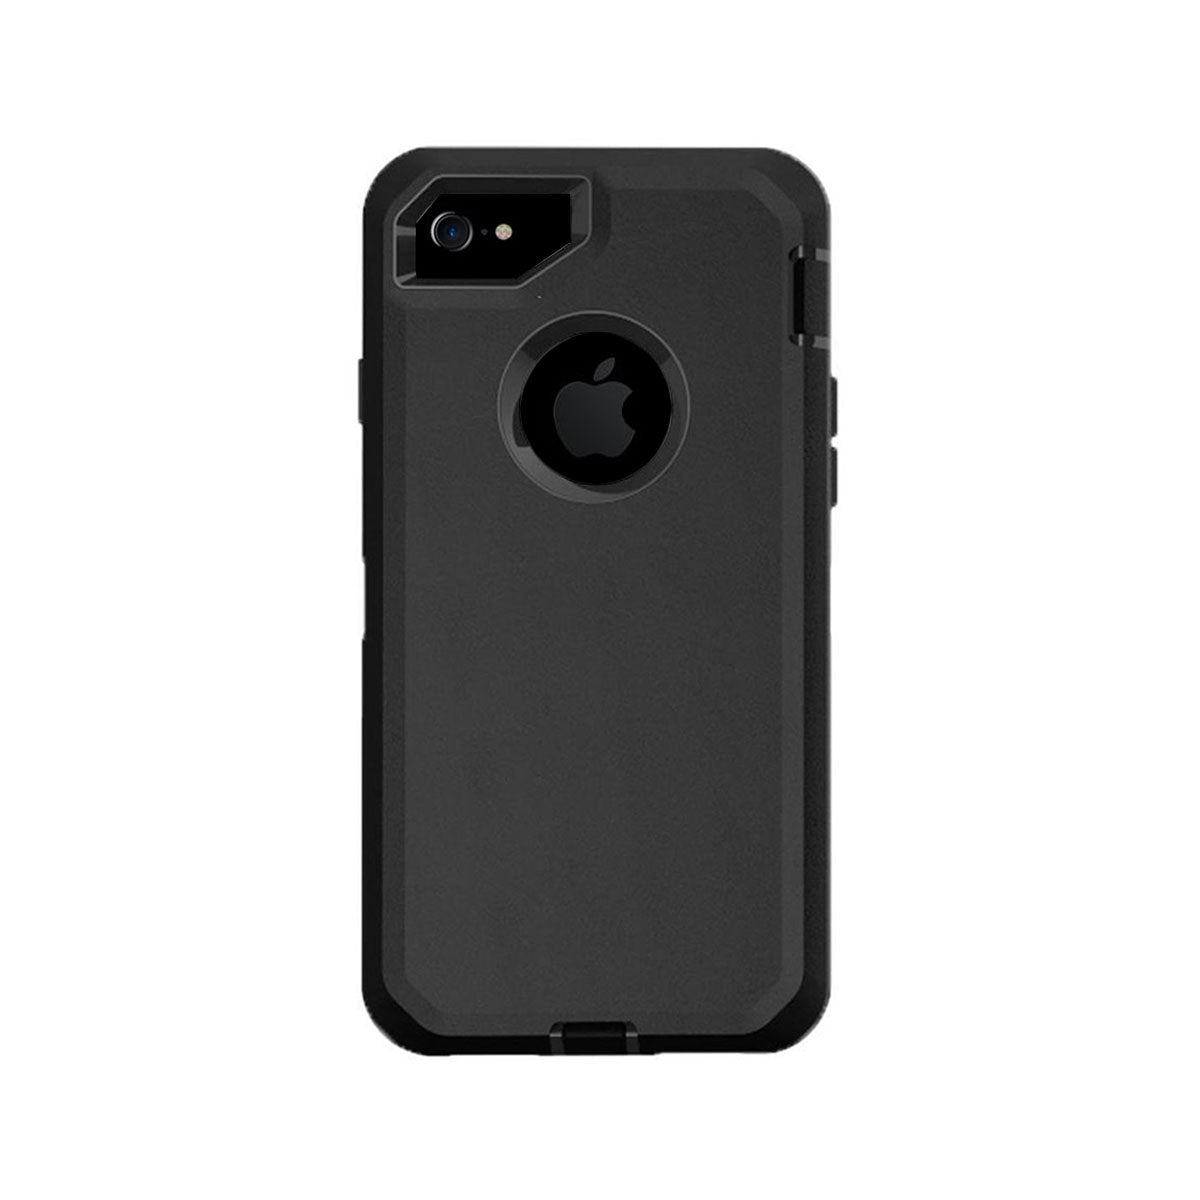 a89b919896 Case For Apple Iphone 7 Plus, Heavy Duty Military Grade Armor Protective  Case, Anti Shock Defender Cover Shell For Apple Iphone 7 Plus - Black